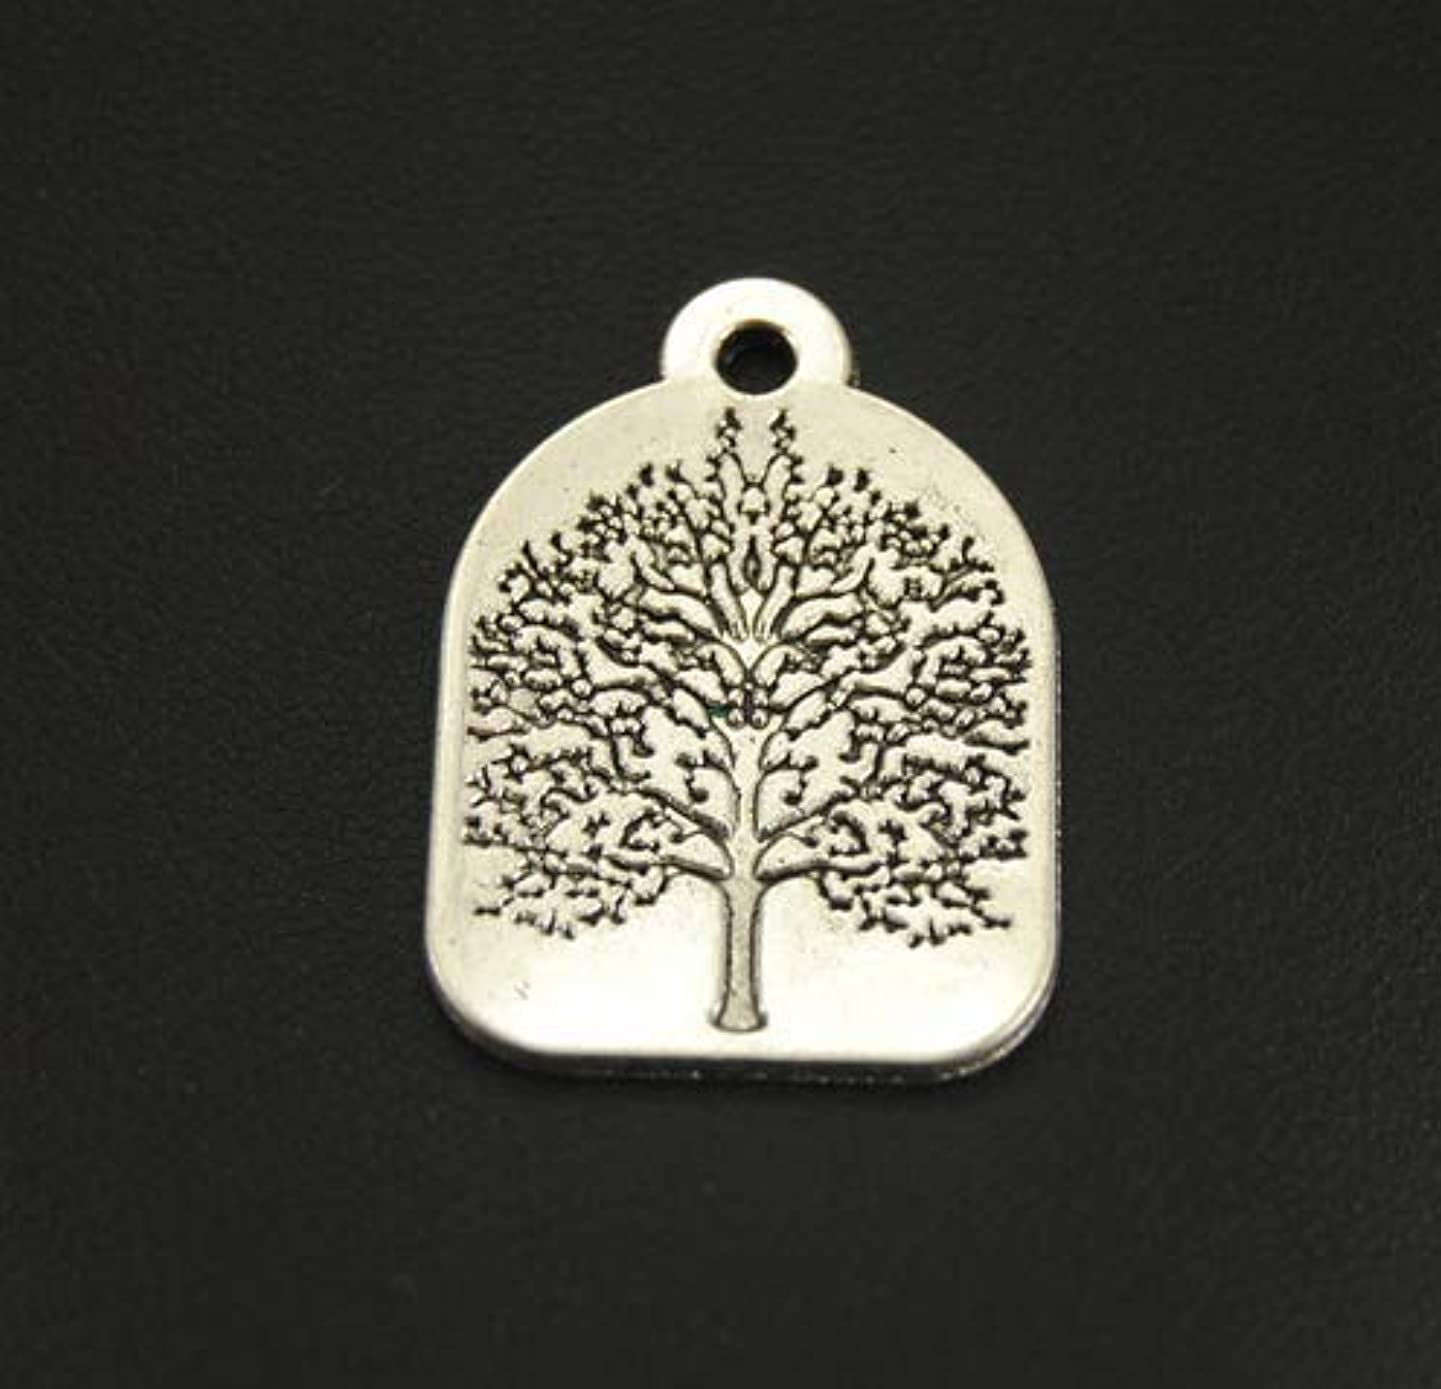 10 pcs Tree of Life Charms Antique Silver Tone 31x22mm (NS835)